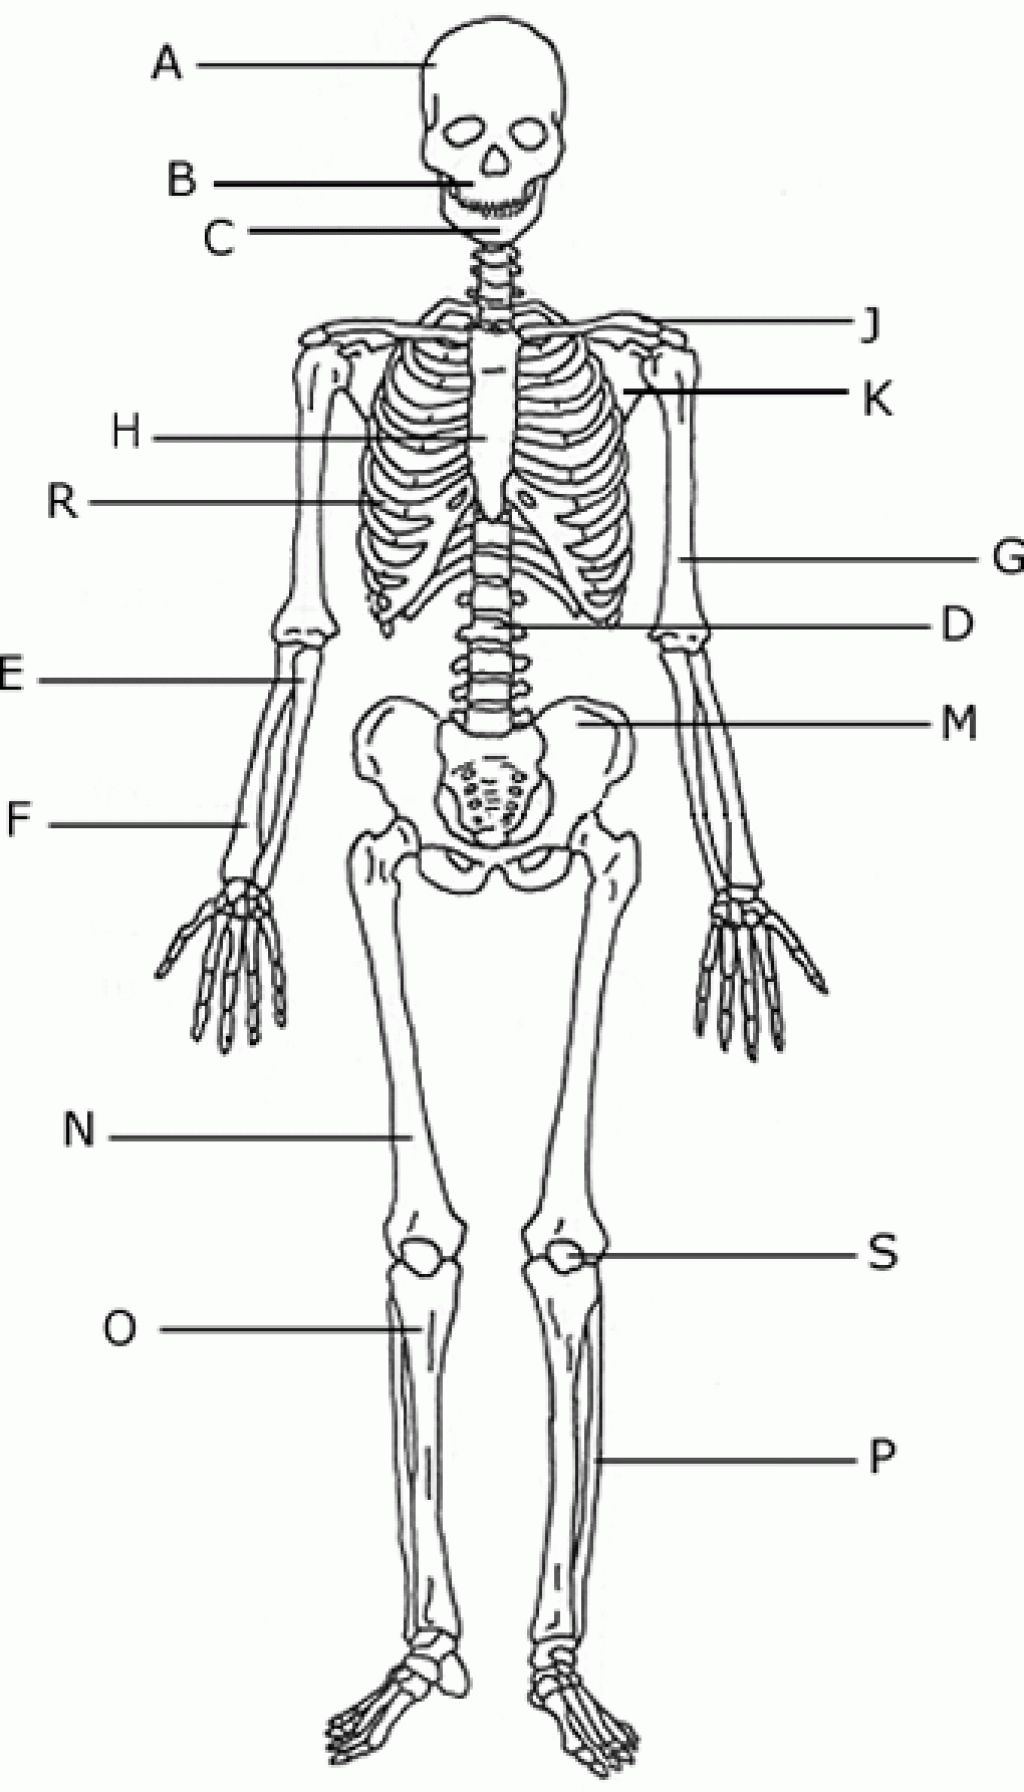 Unlabeled Diagram Of The Human Skeleton Koibana Info Human Skeleton Human Skeleton Bones Human Anatomy